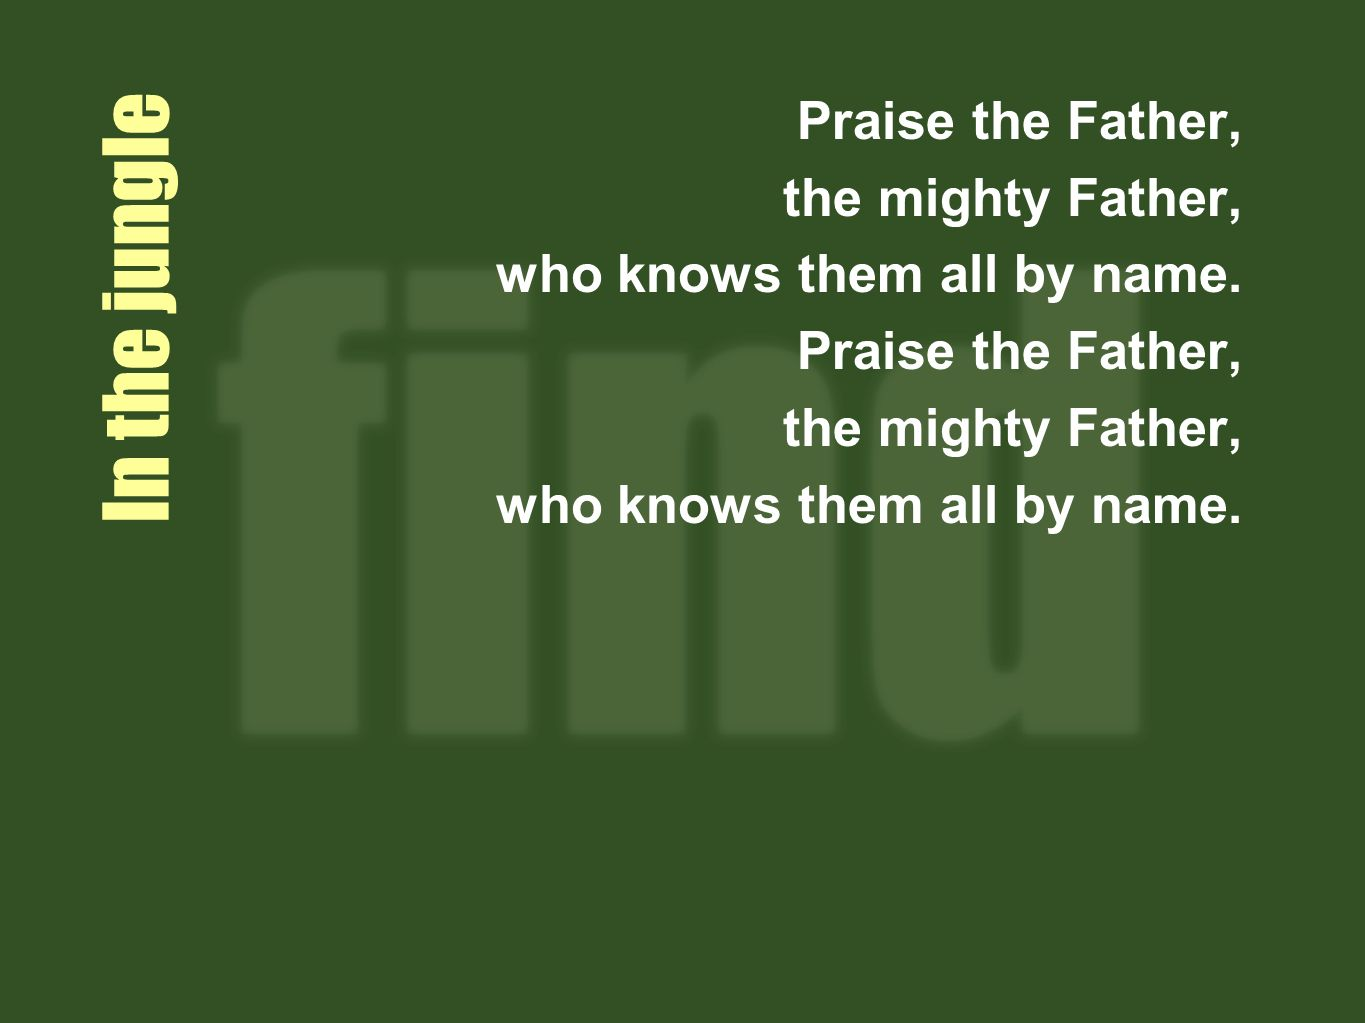 In the jungle Praise the Father, the mighty Father,